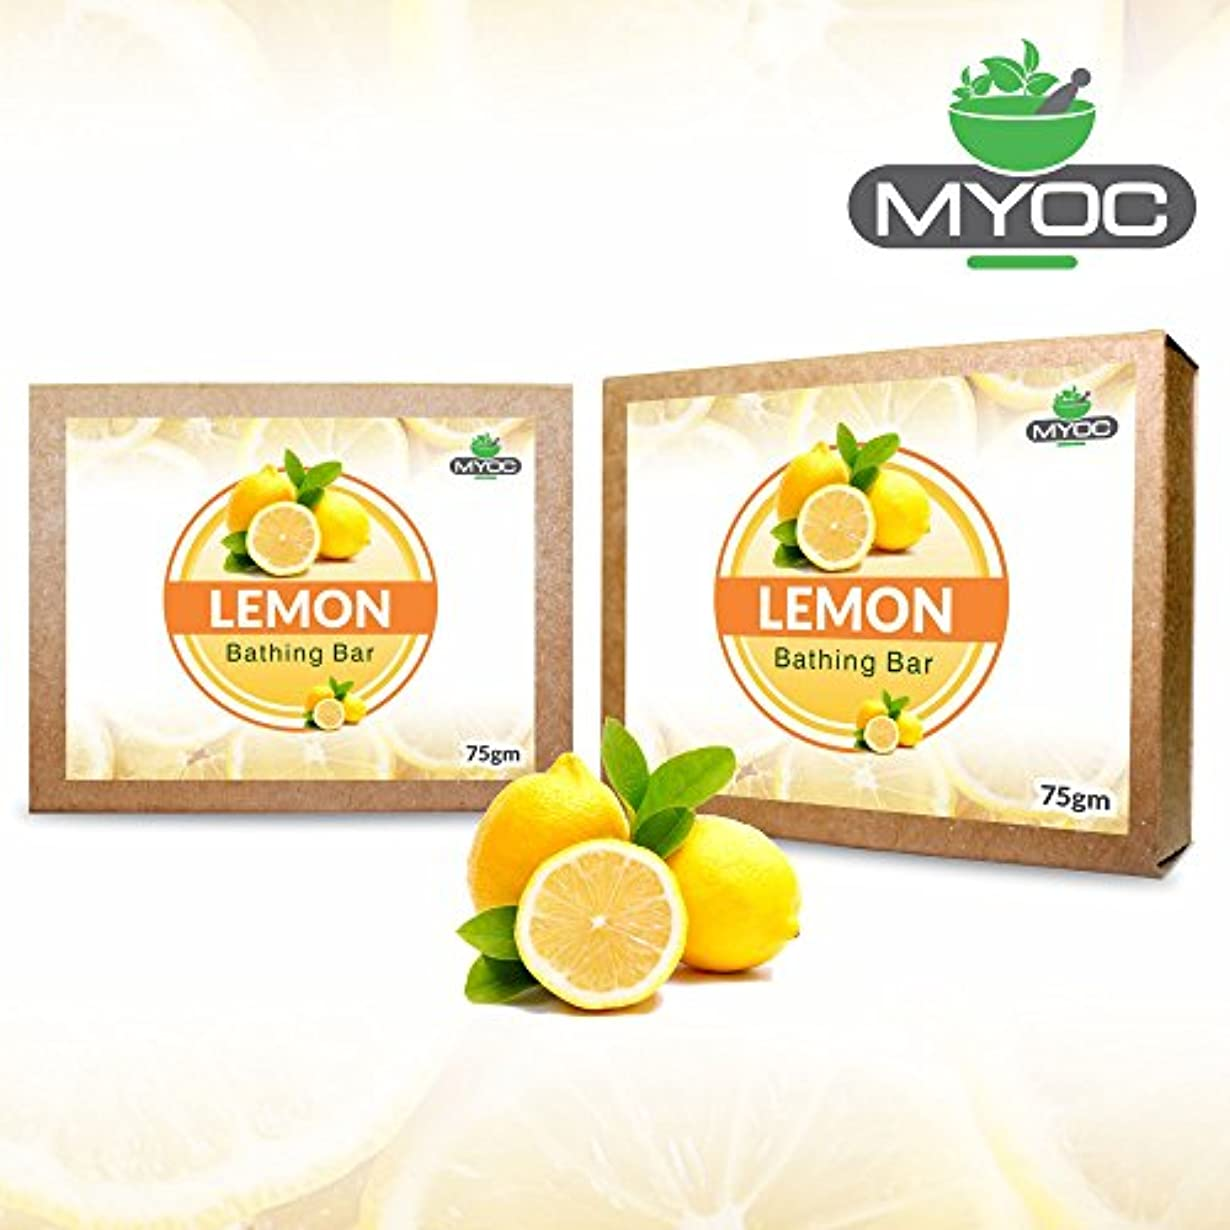 尾ハイブリッド踏み台Lemon Oil And Vitamin E Astringent Soap, deodorant, antiseptic soap for clogged pores and acne prone skin 75g...